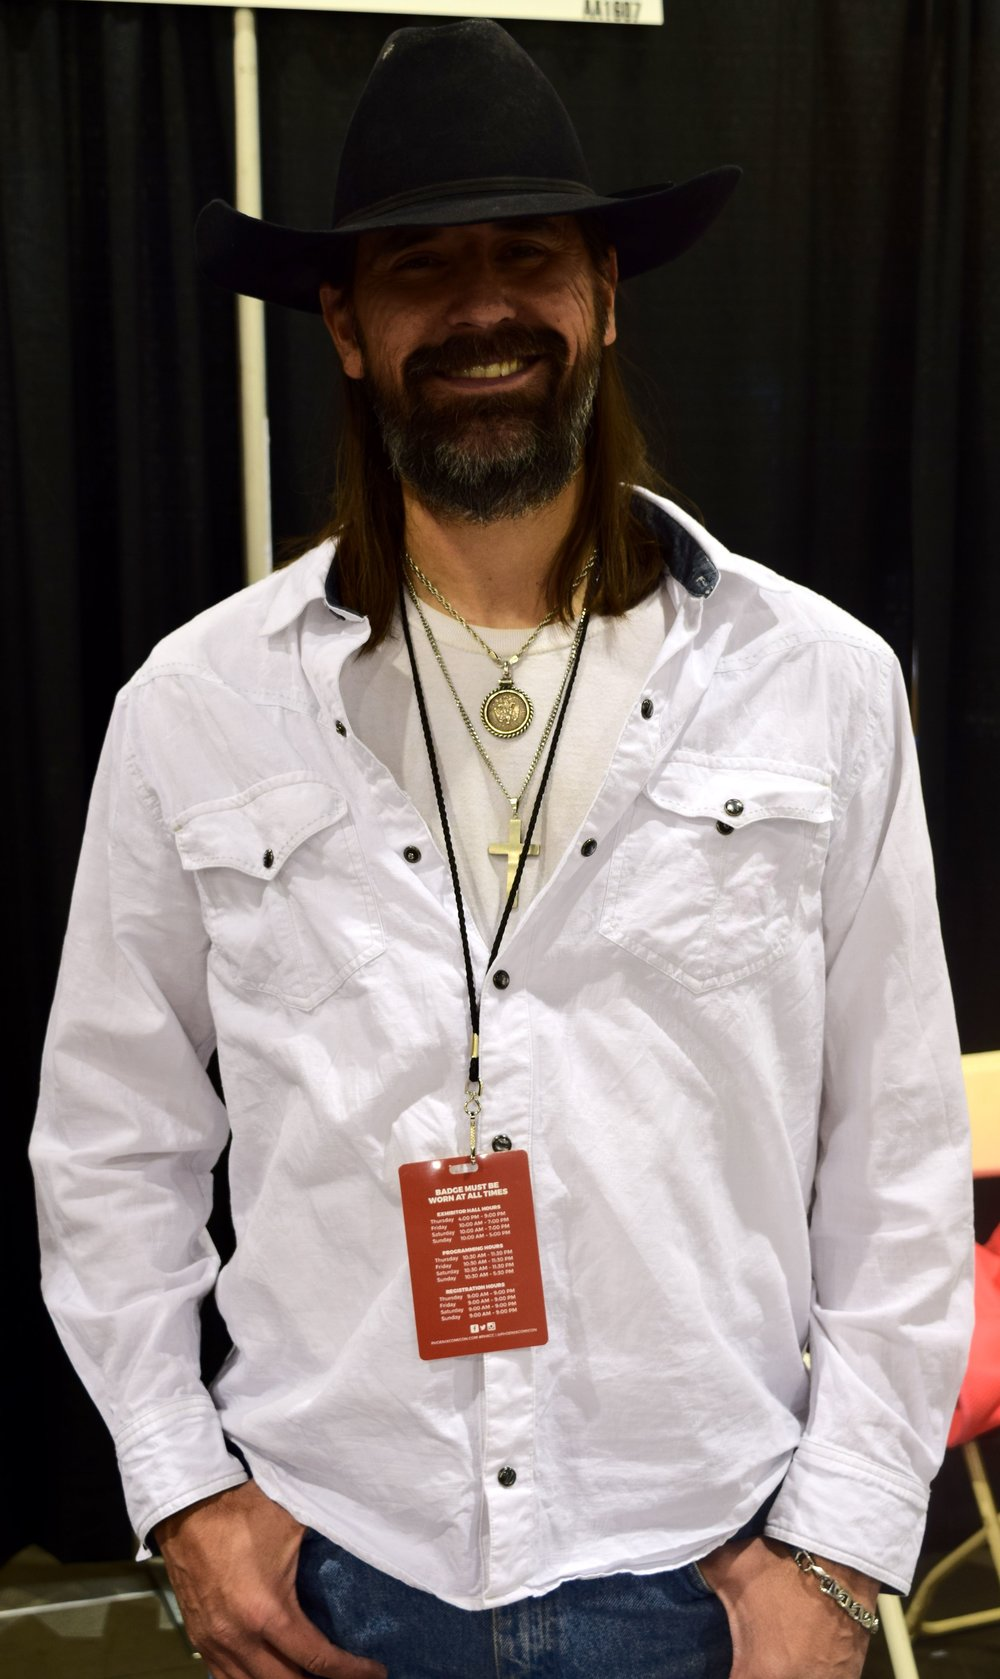 Shawn Fillbach at Phoenix Comic Con 2017.